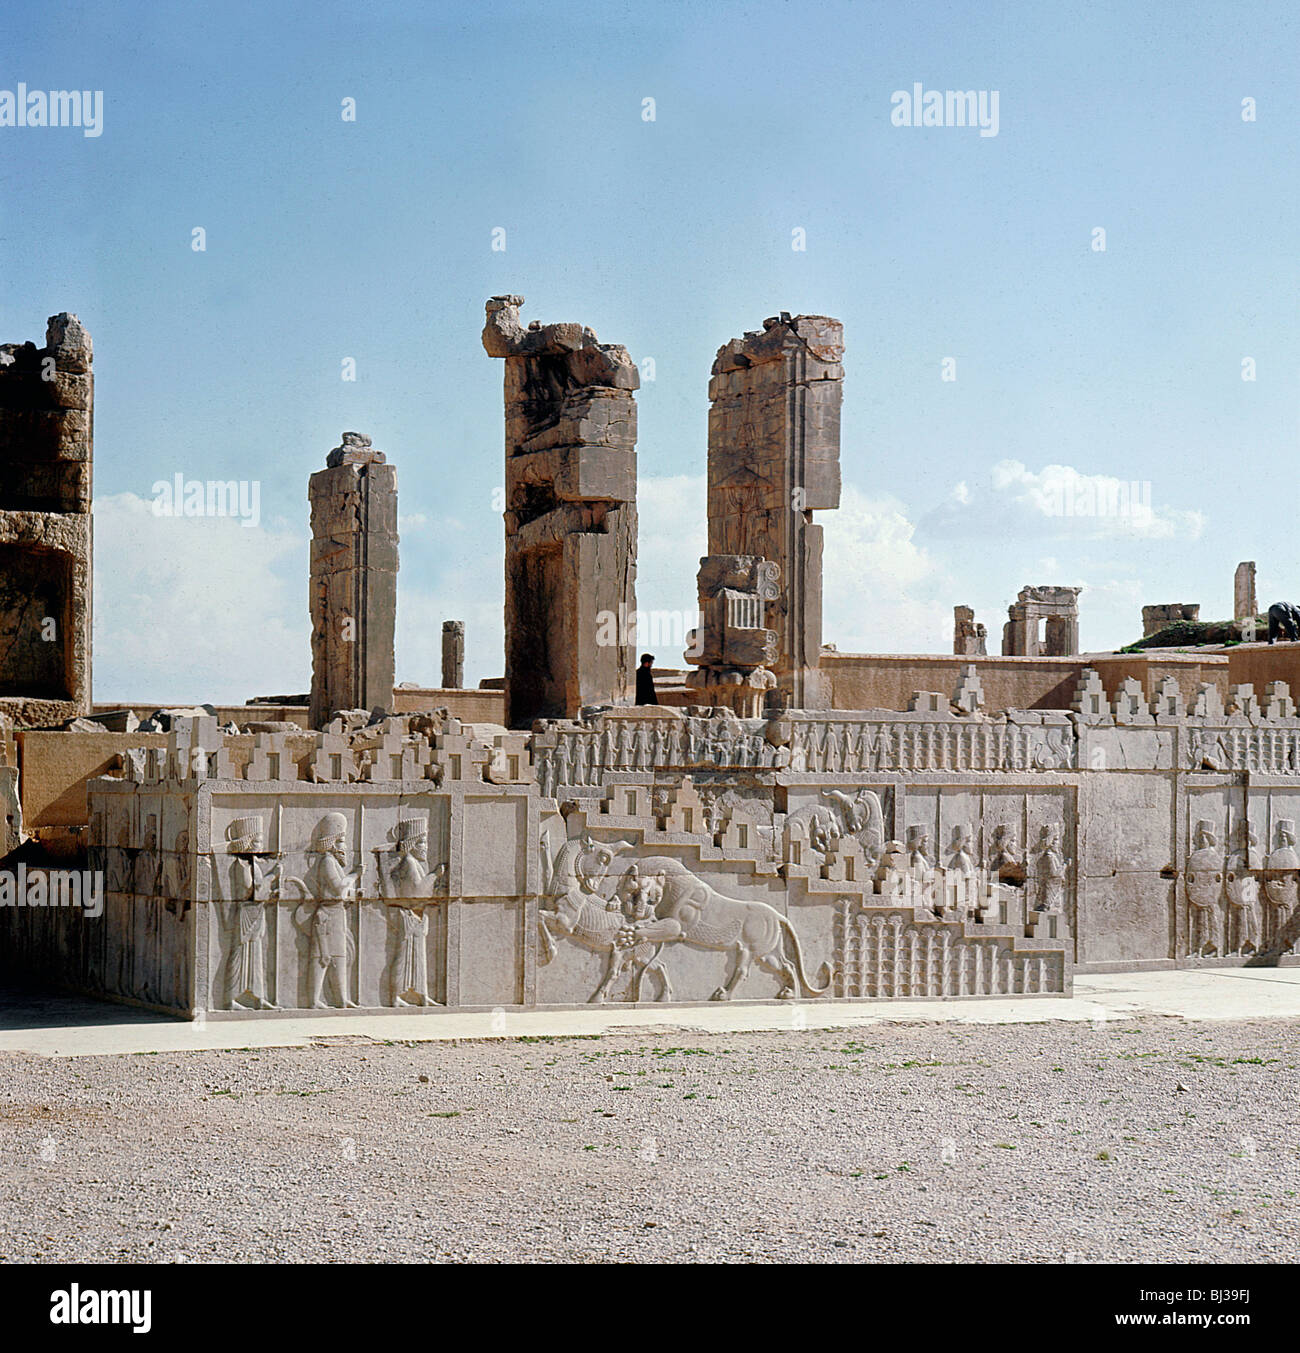 Best Kitchen Gallery: Relief Carving Ruins Of The Ancient Persian City Of Persepolis of Ancient Persian Architecture on rachelxblog.com